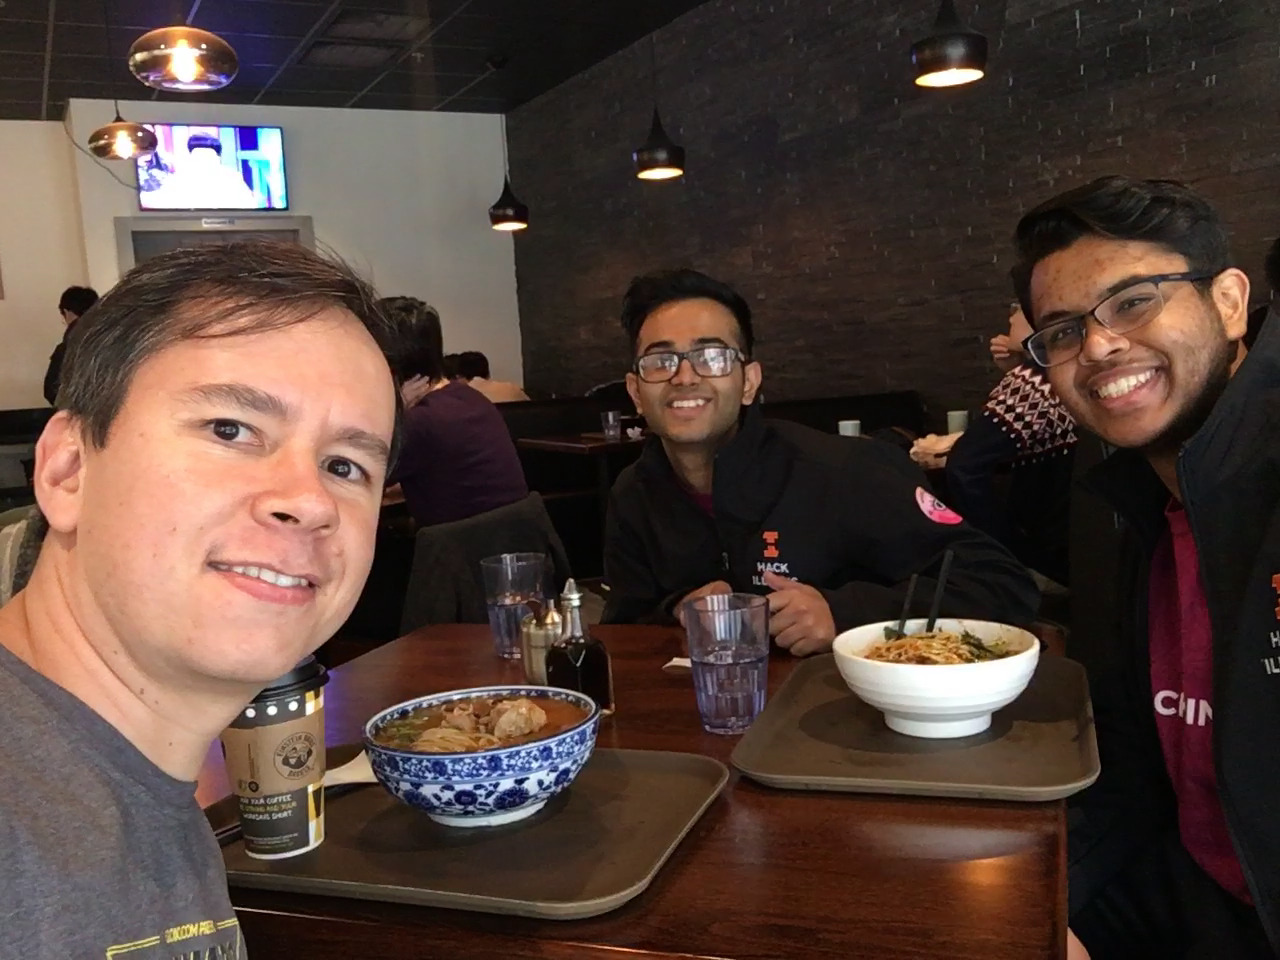 Pablo (left) has lunch with Shreyas and Kavi from HackIllinois staff (right) at Mid Summer Lounge